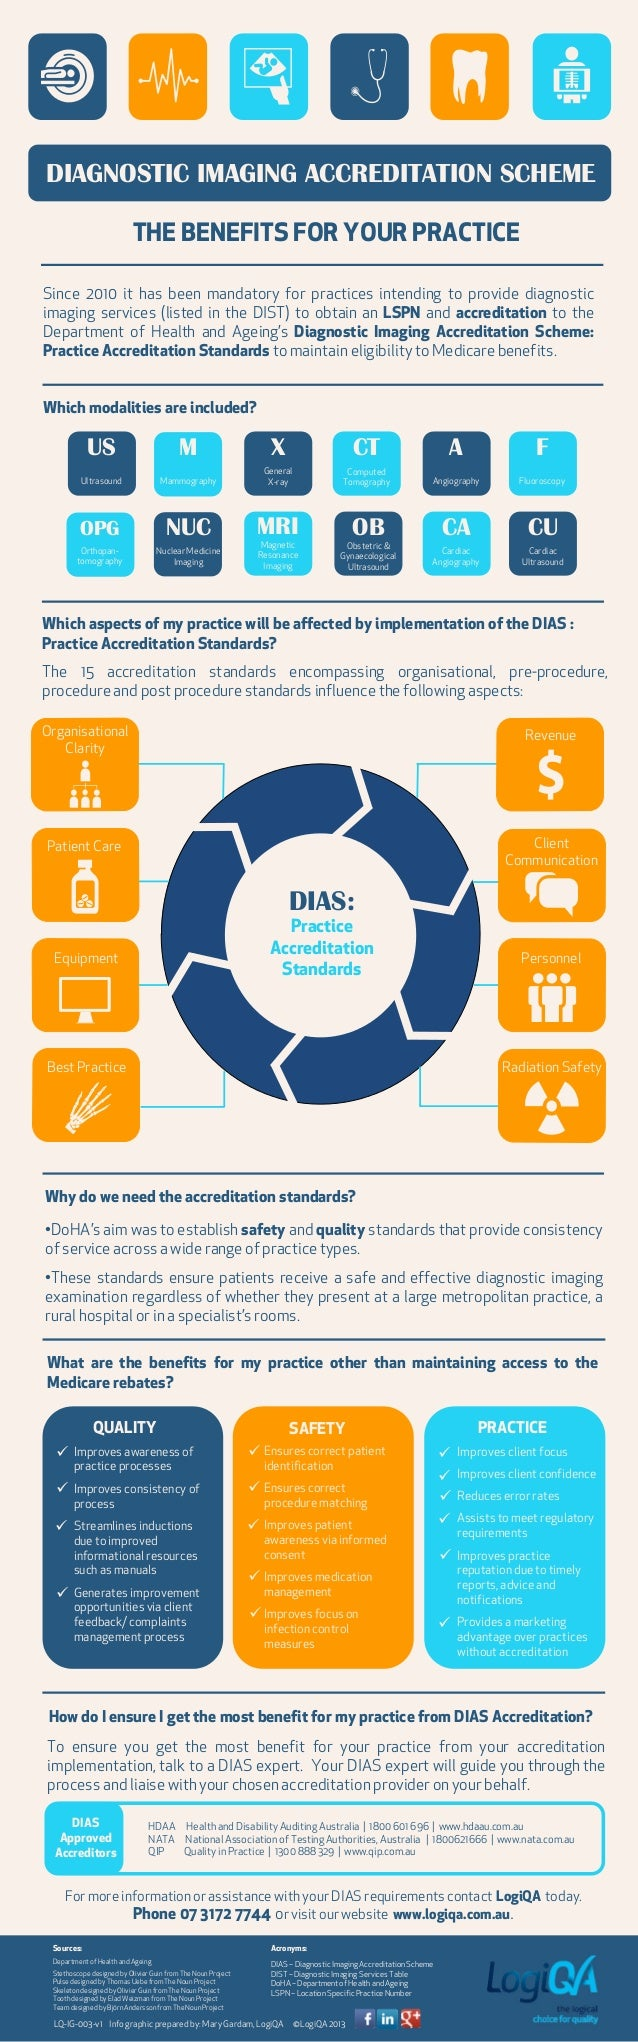 Diagnostic Imaging Accreditation Scheme Infographic - RELEVANT TO AUSTRALIA ONLY